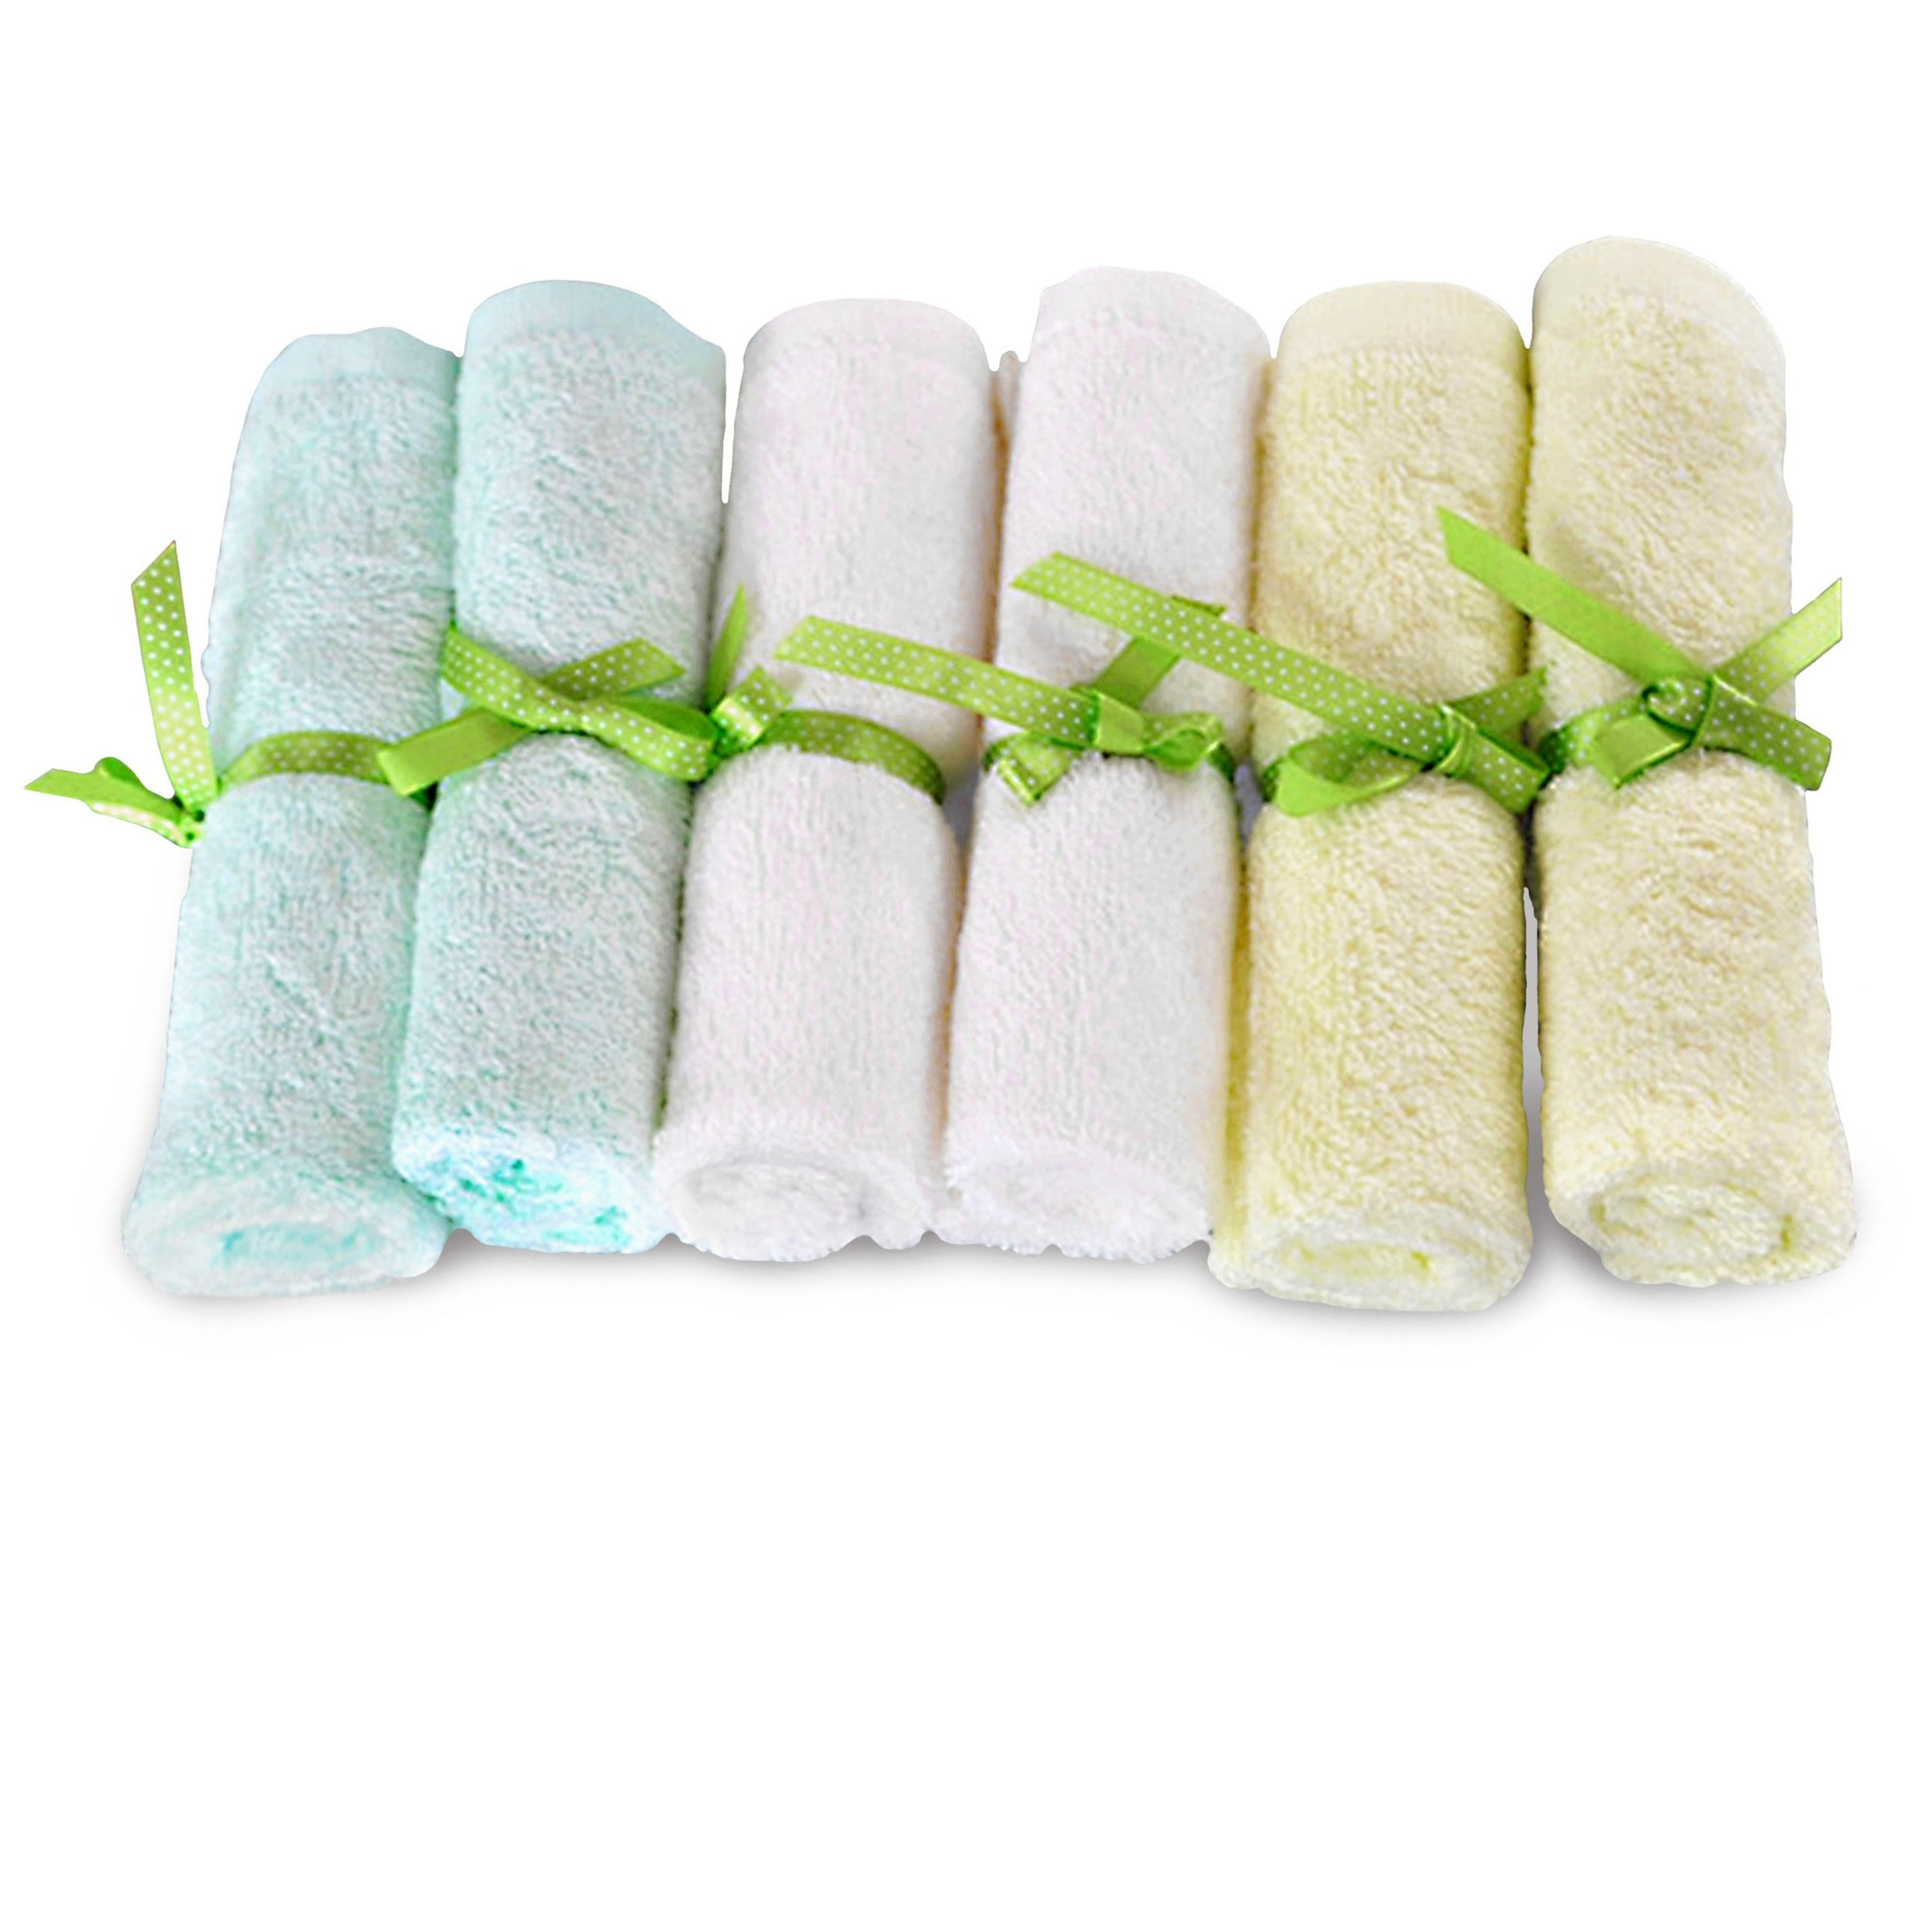 Brooklyn Bamboo   Baby Washcloth Wipes   Extremely Soft & Absorbent   Extra Durable & Hypoallergenic   6 Pack Set   10 x 10 Inches   Assorted Colors